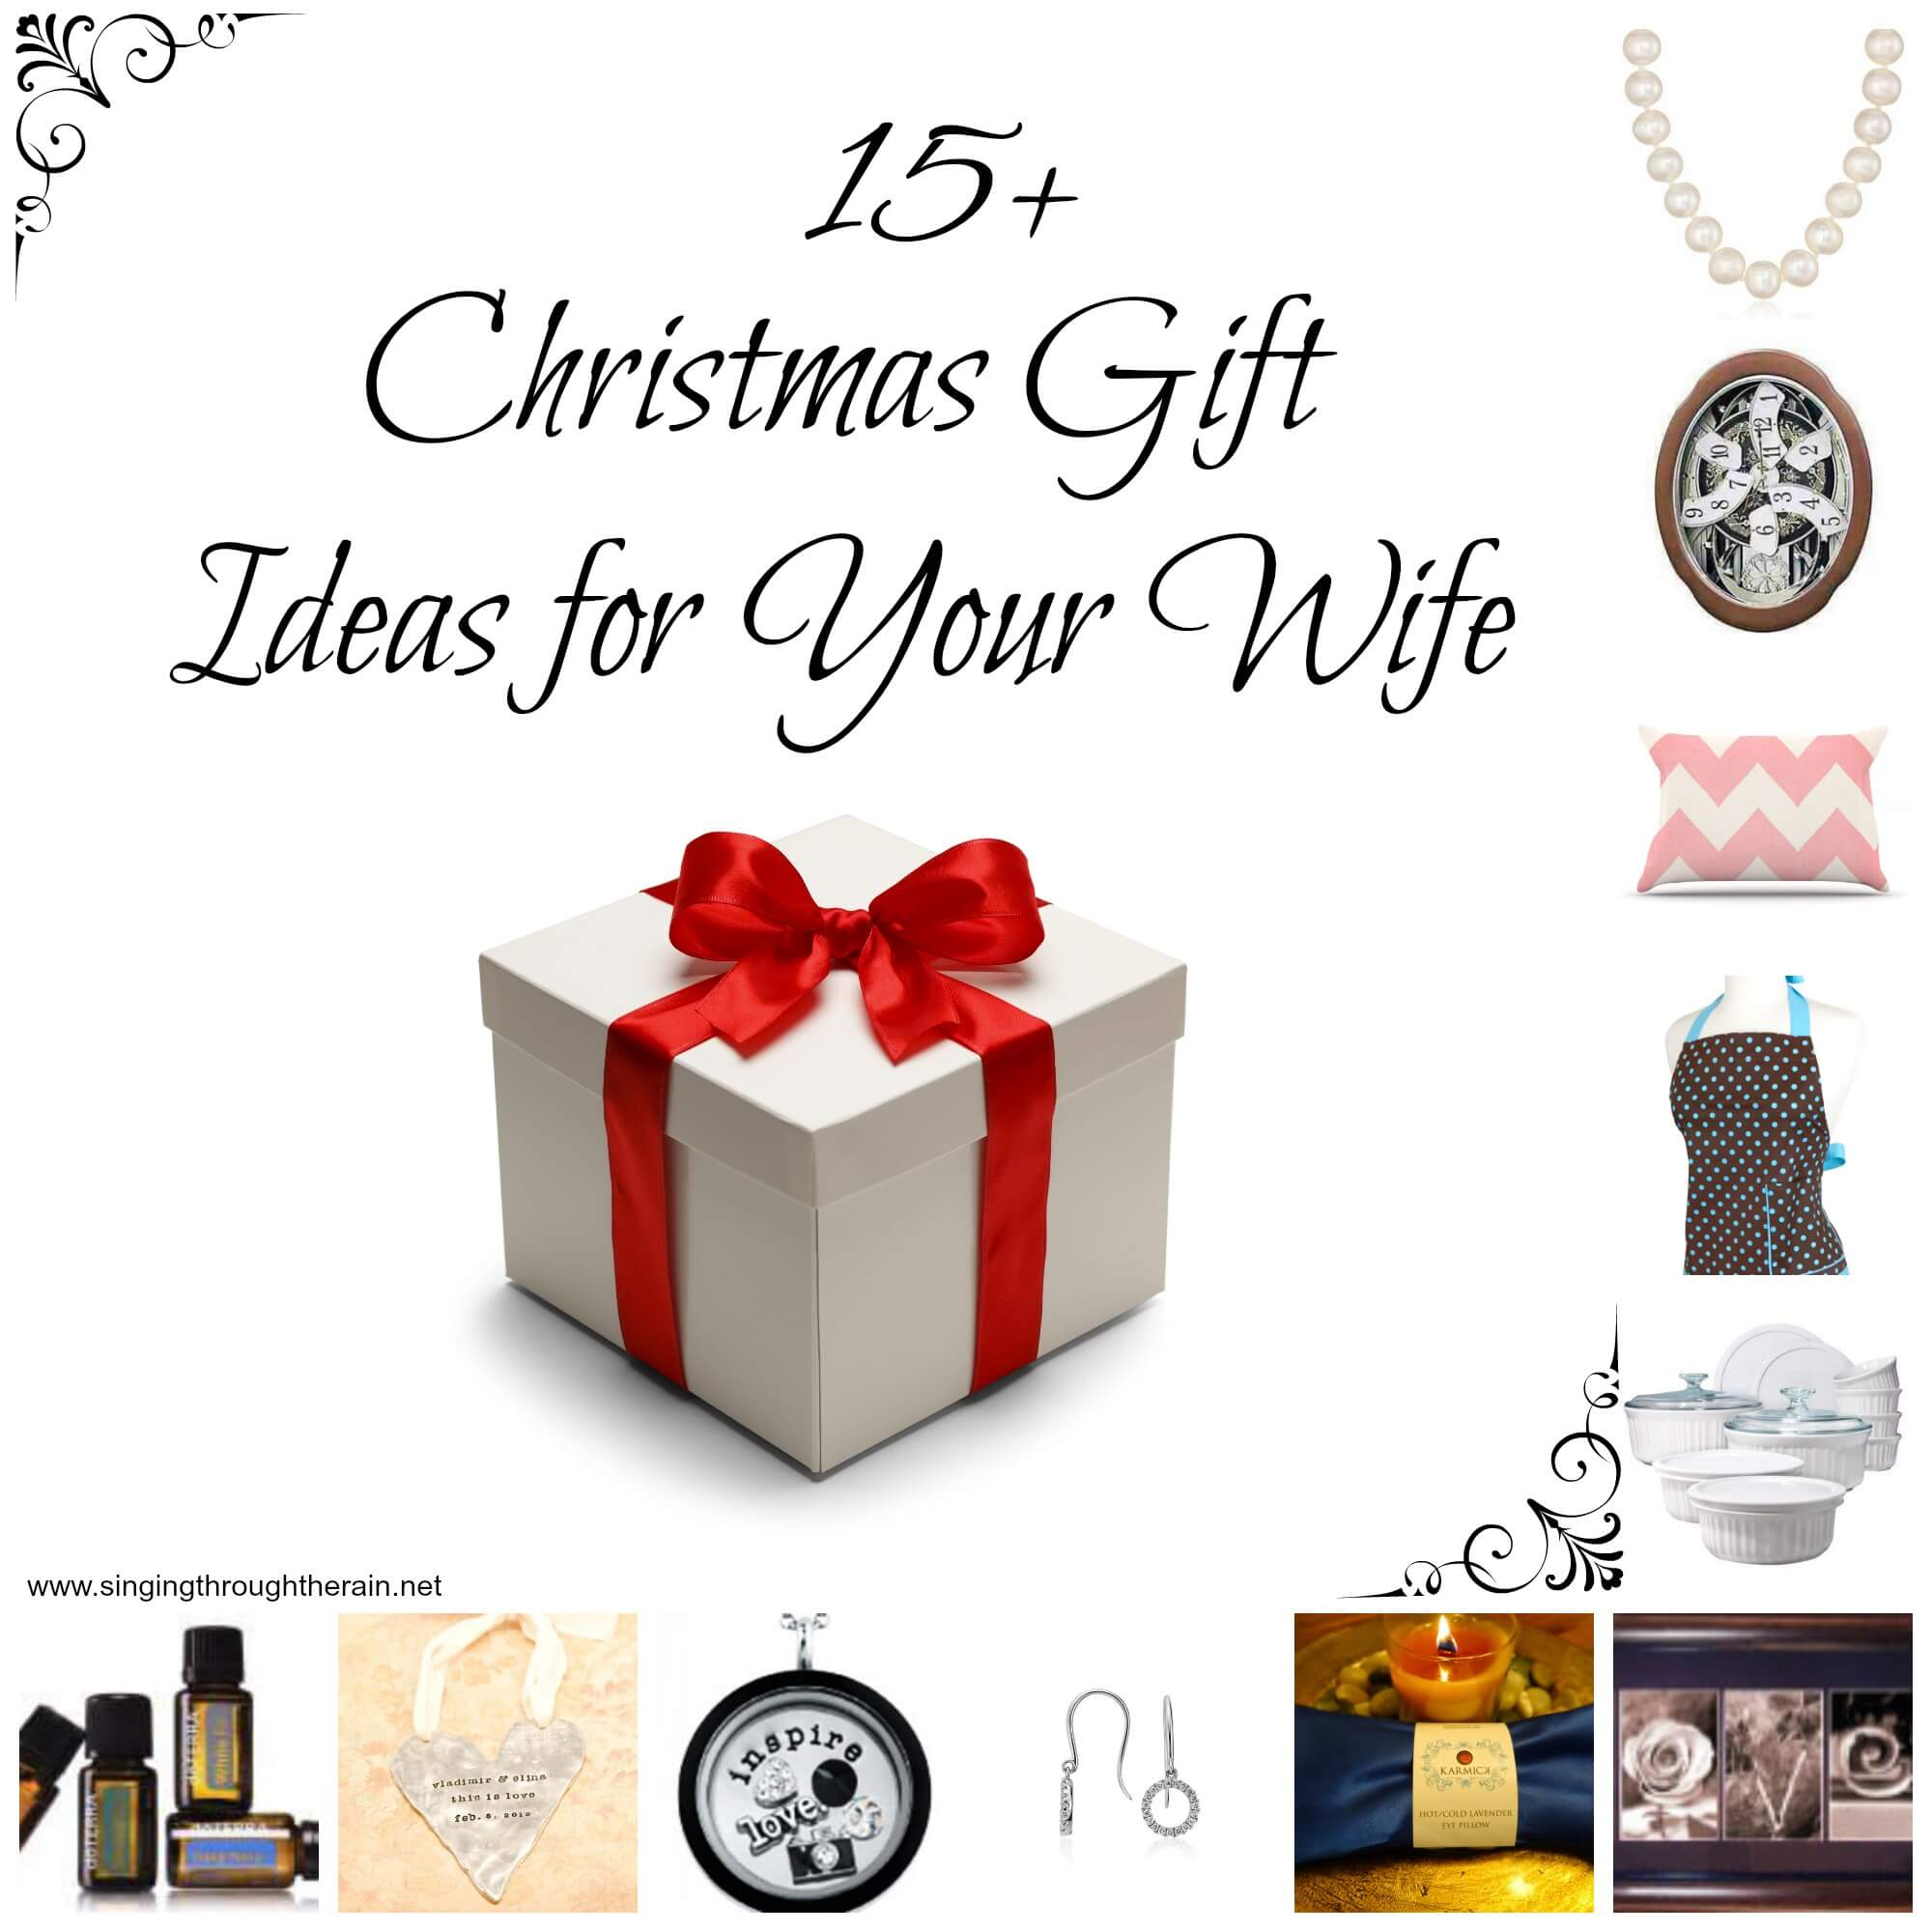 Wife Gifts Christmas: 15+ Christmas Gift Ideas For Your Wife